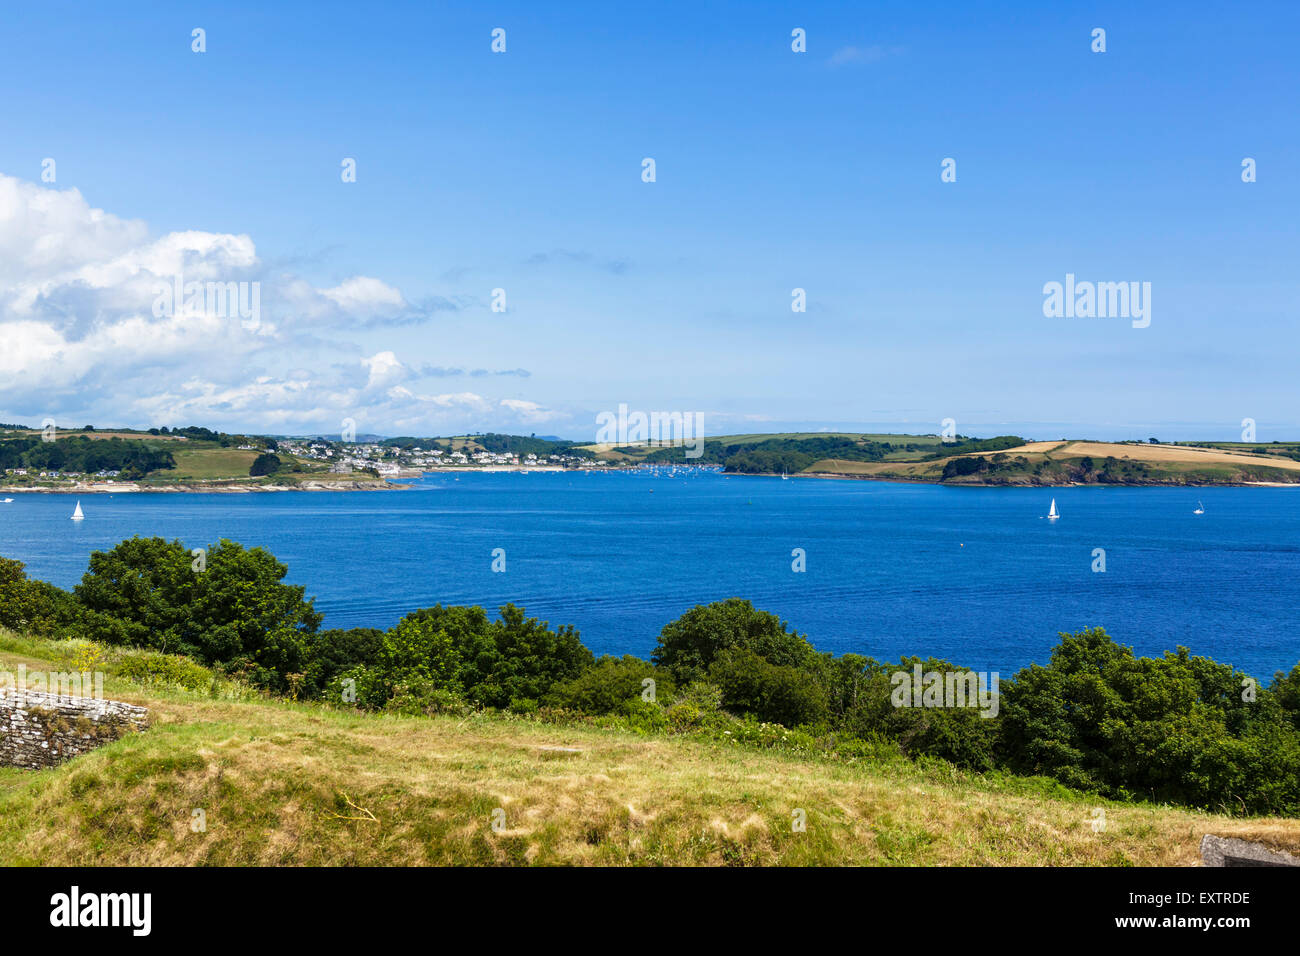 View over Carrick Roads towards St Mawes from Pendennis Castle, Falmouth, Cornwall, England, UK - Stock Image